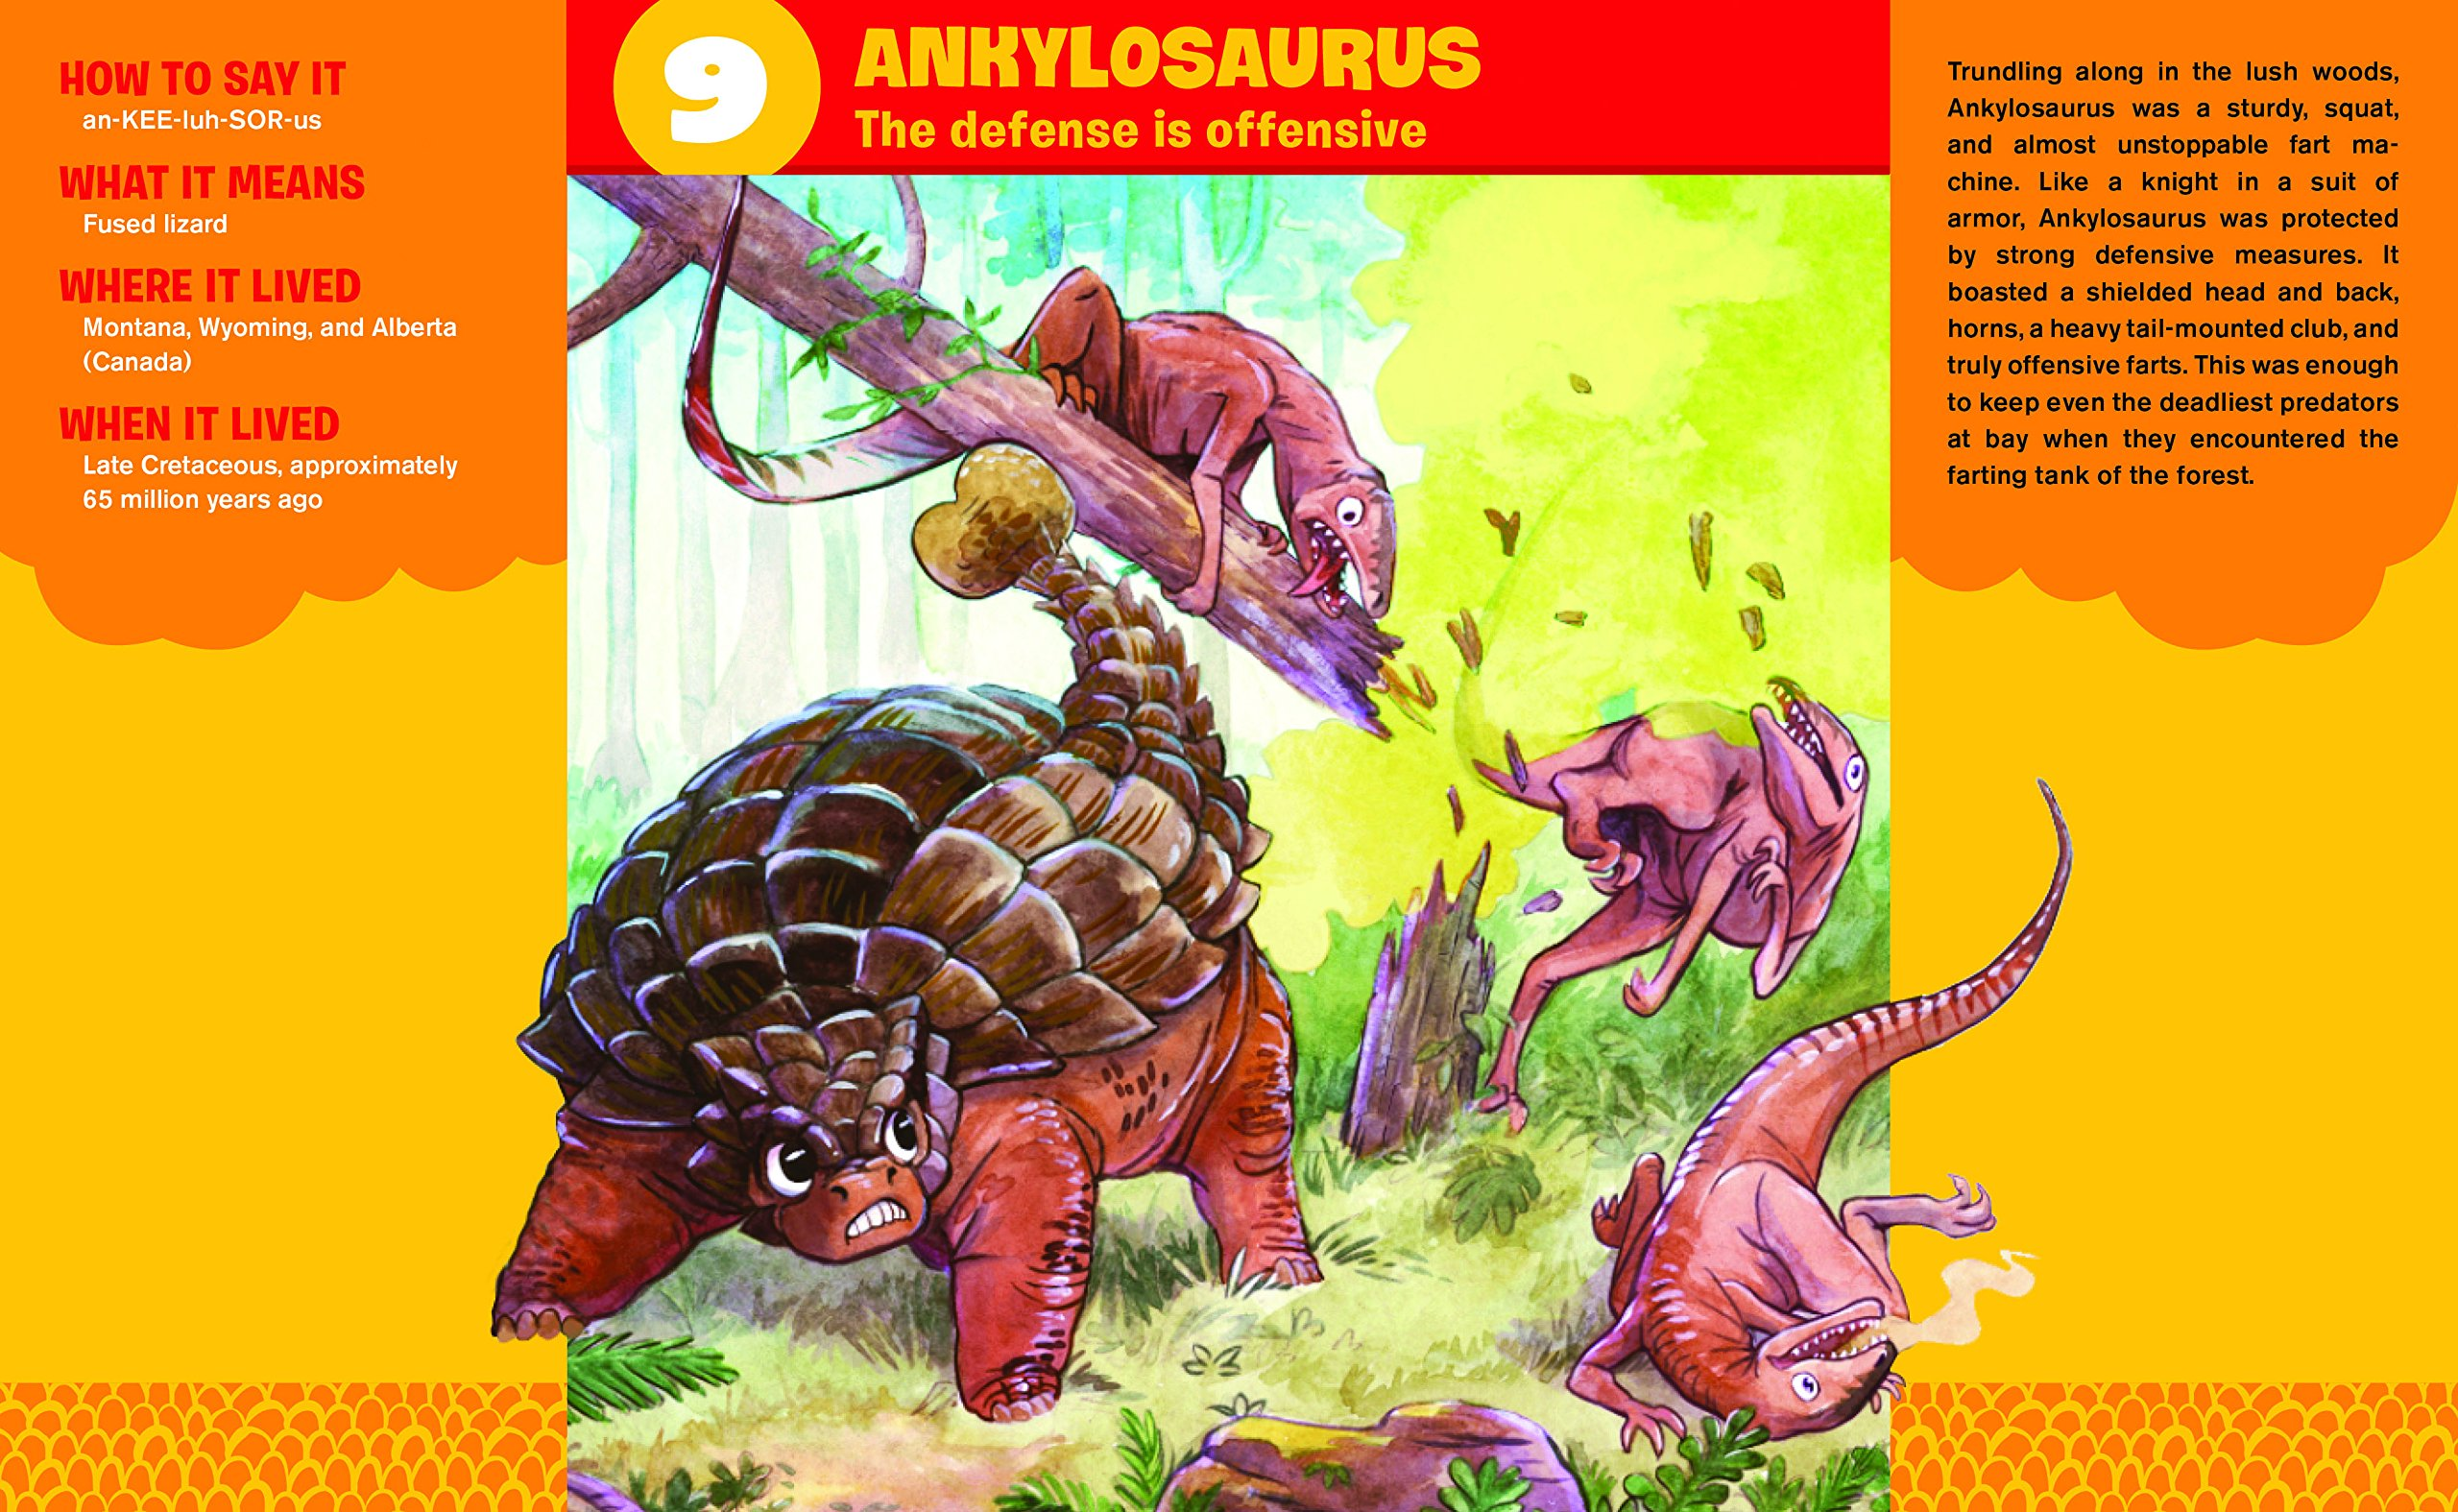 Jurassic Farts: A Spotter's Guide